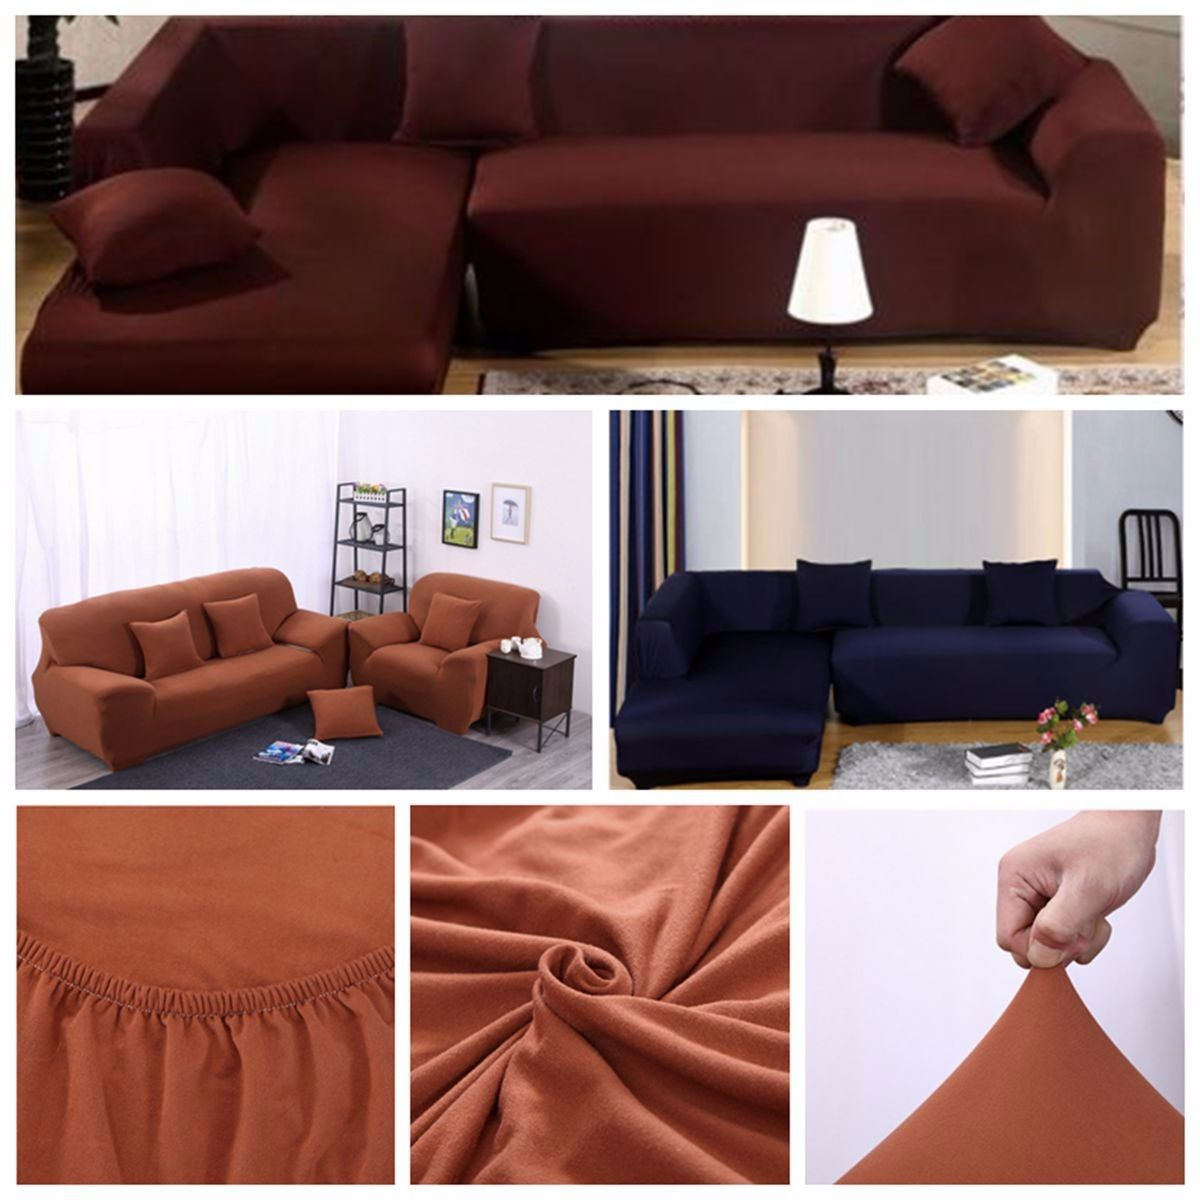 Pin By البيت الأنيق اونلاين On اثاث منزلي Home Furniture Fabric Sofa Cover Sectional Slipcover Sectional Couch Cover